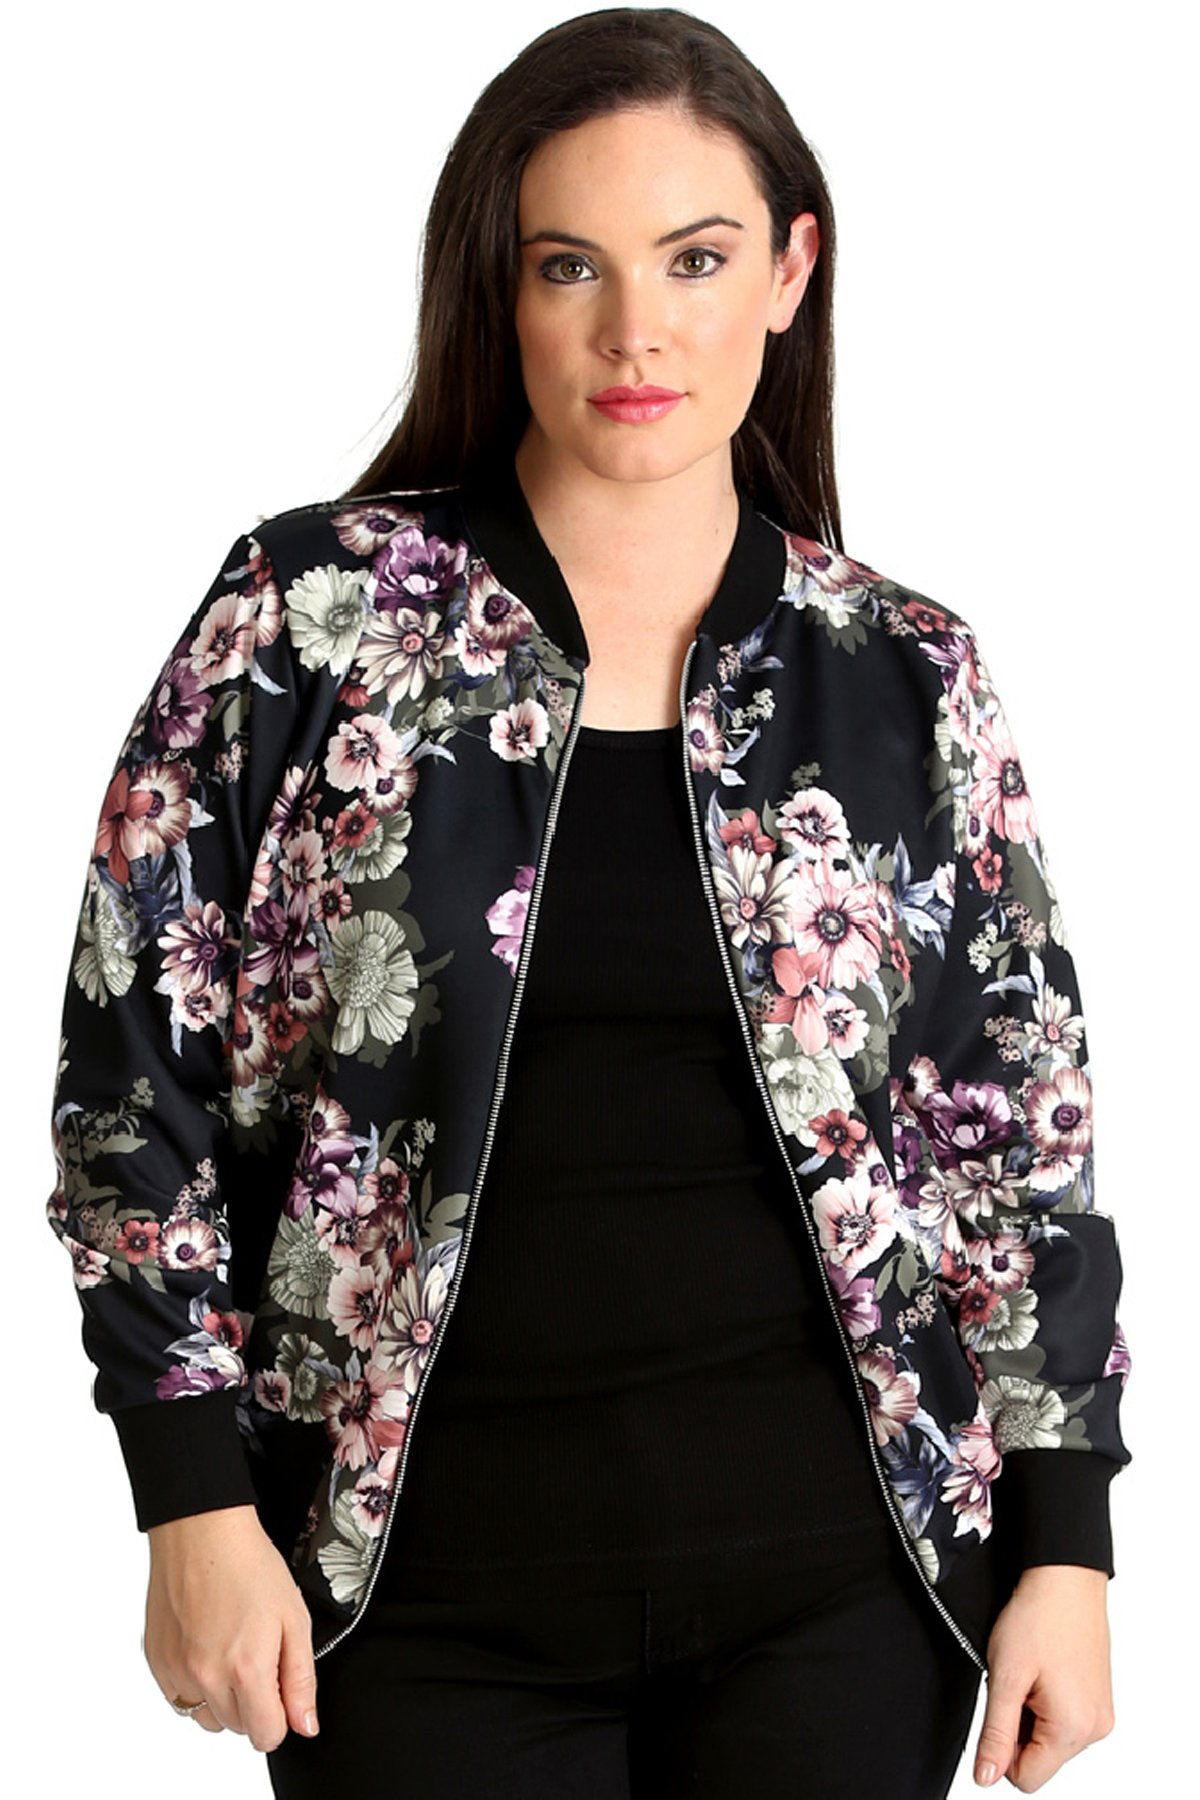 Nouvelle Collection. Womens Plus Size Bomber Jacket Ladies Floral Print Varsity Style Ribbed Long Sleeve Coat Black US Size 22-24